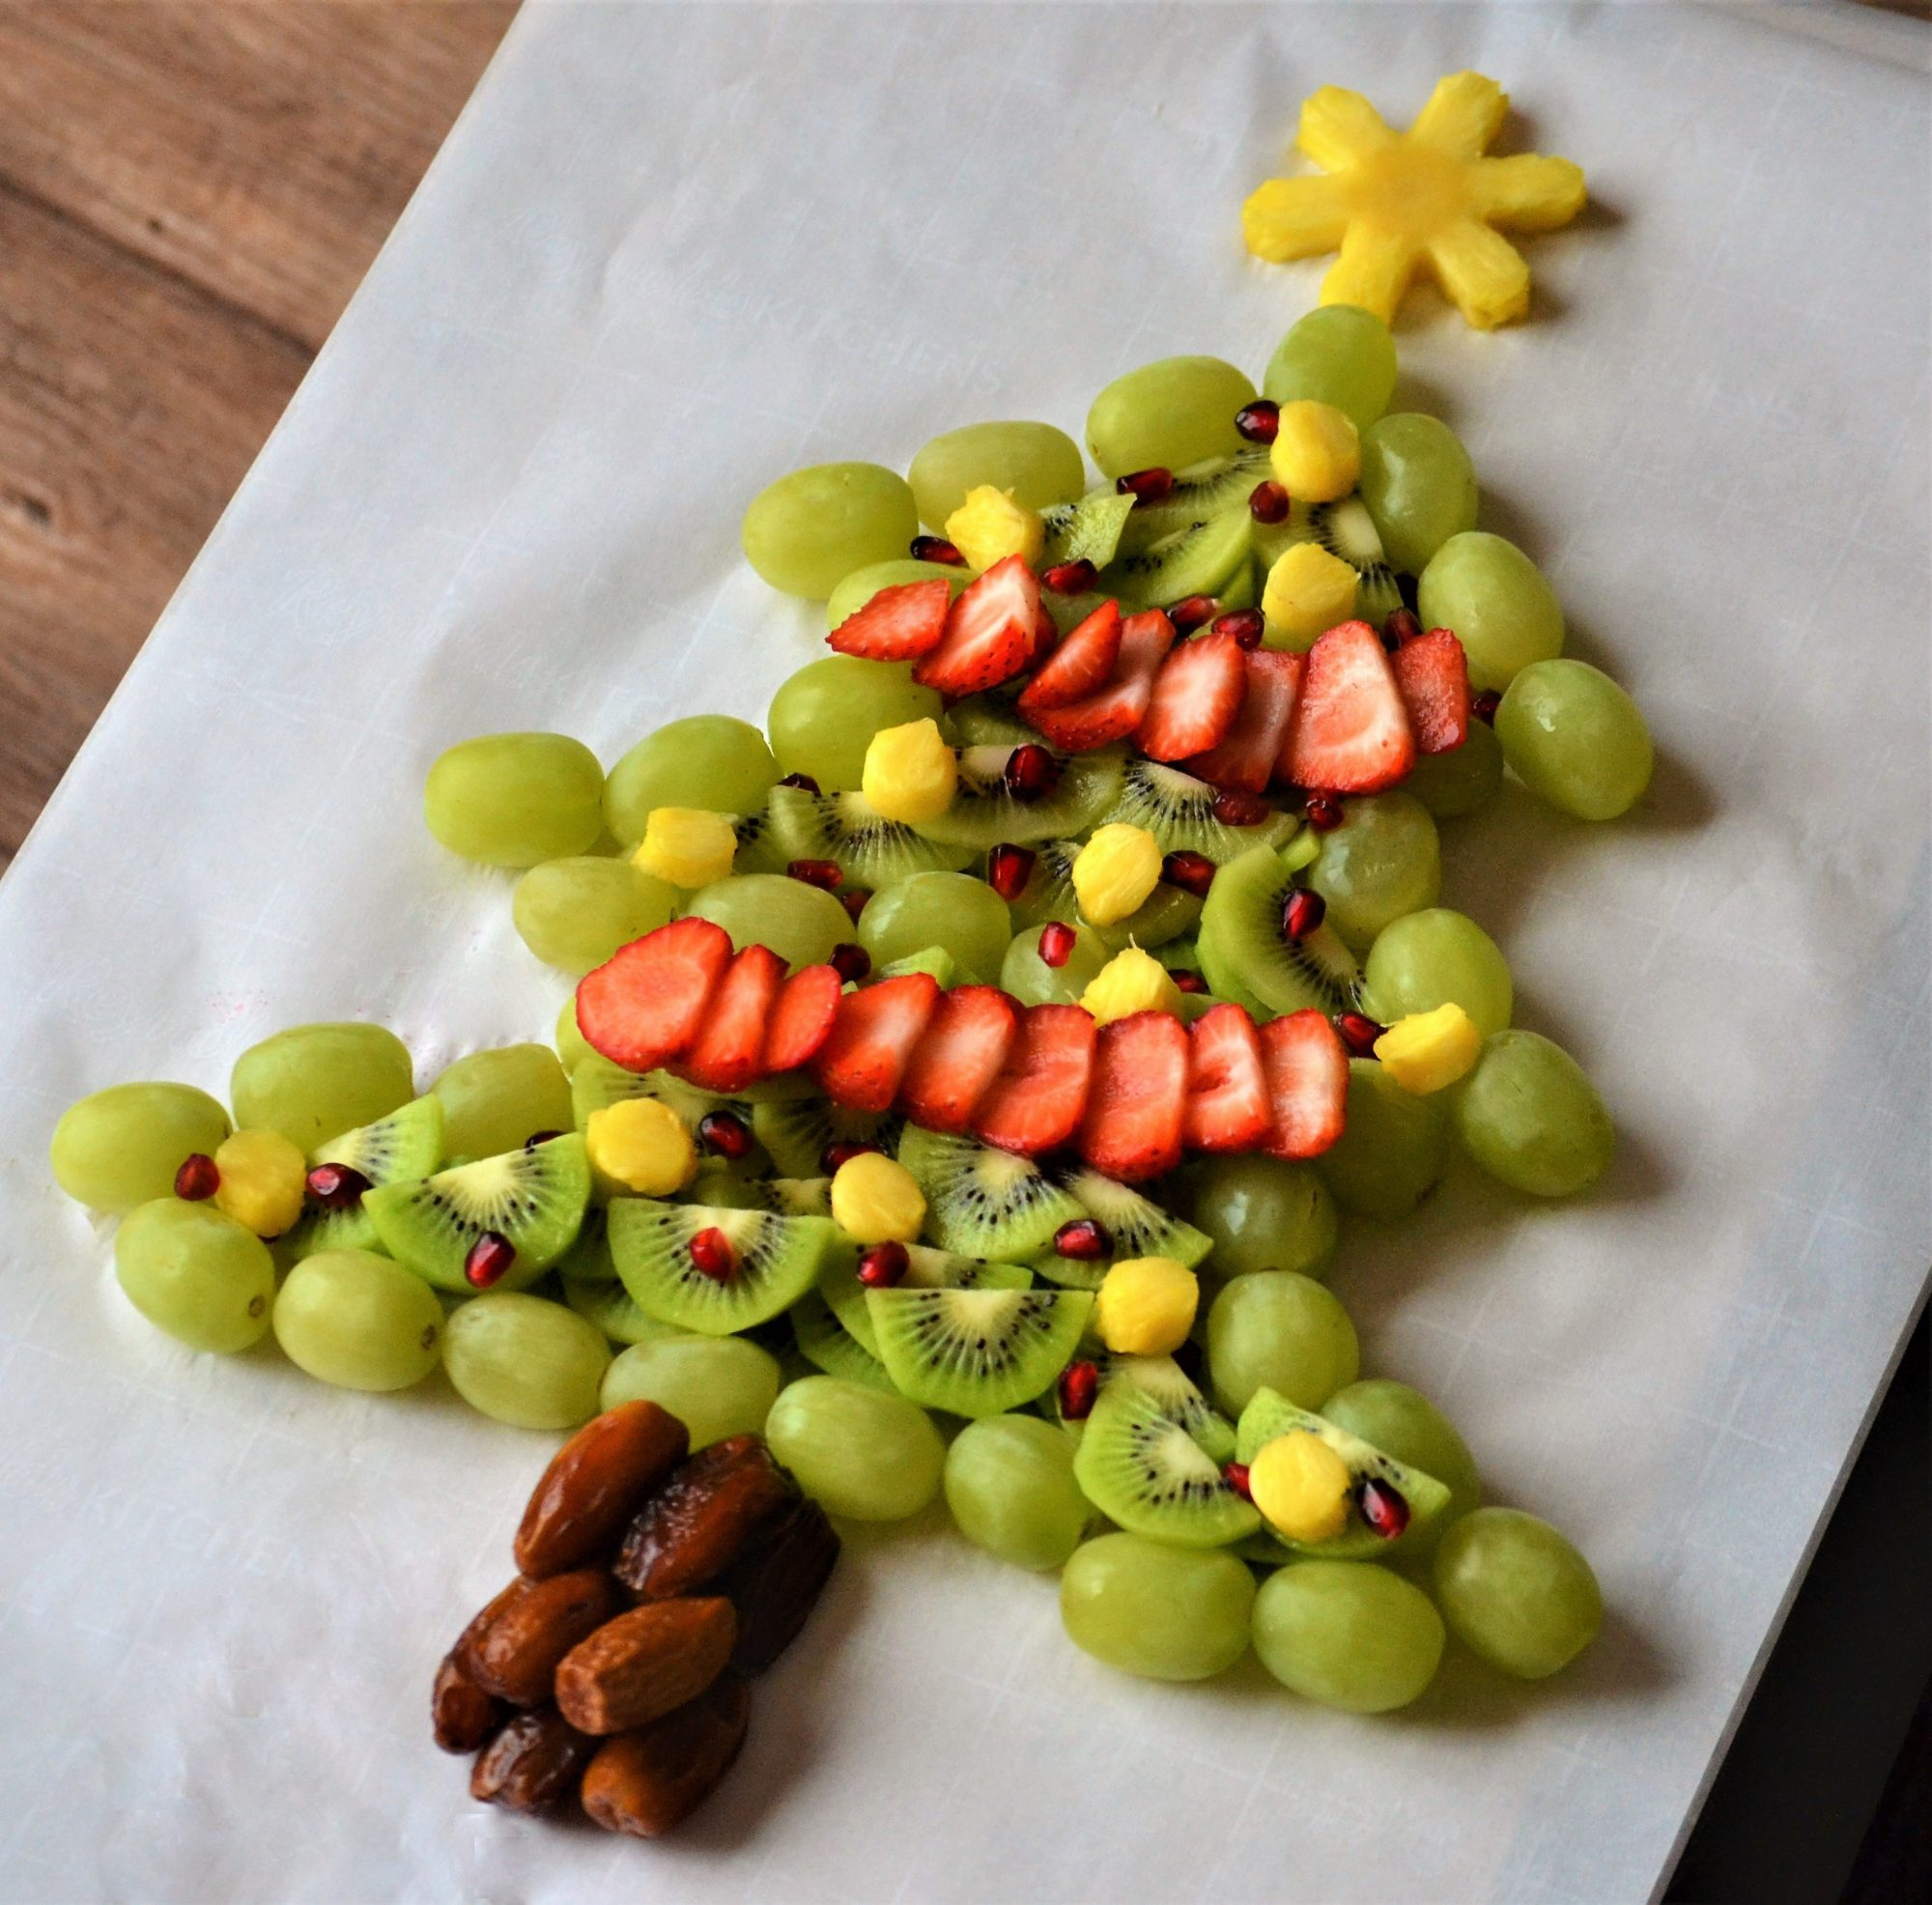 """""""Here's a festive way to serve fruit at your next holiday get-together! Do not prepare too far in advance of your party, or the fruit will dry out. You can mix up any leftover or scrap fruit to make a beautiful salad to serve alongside this Christmas tree fruit platter."""""""